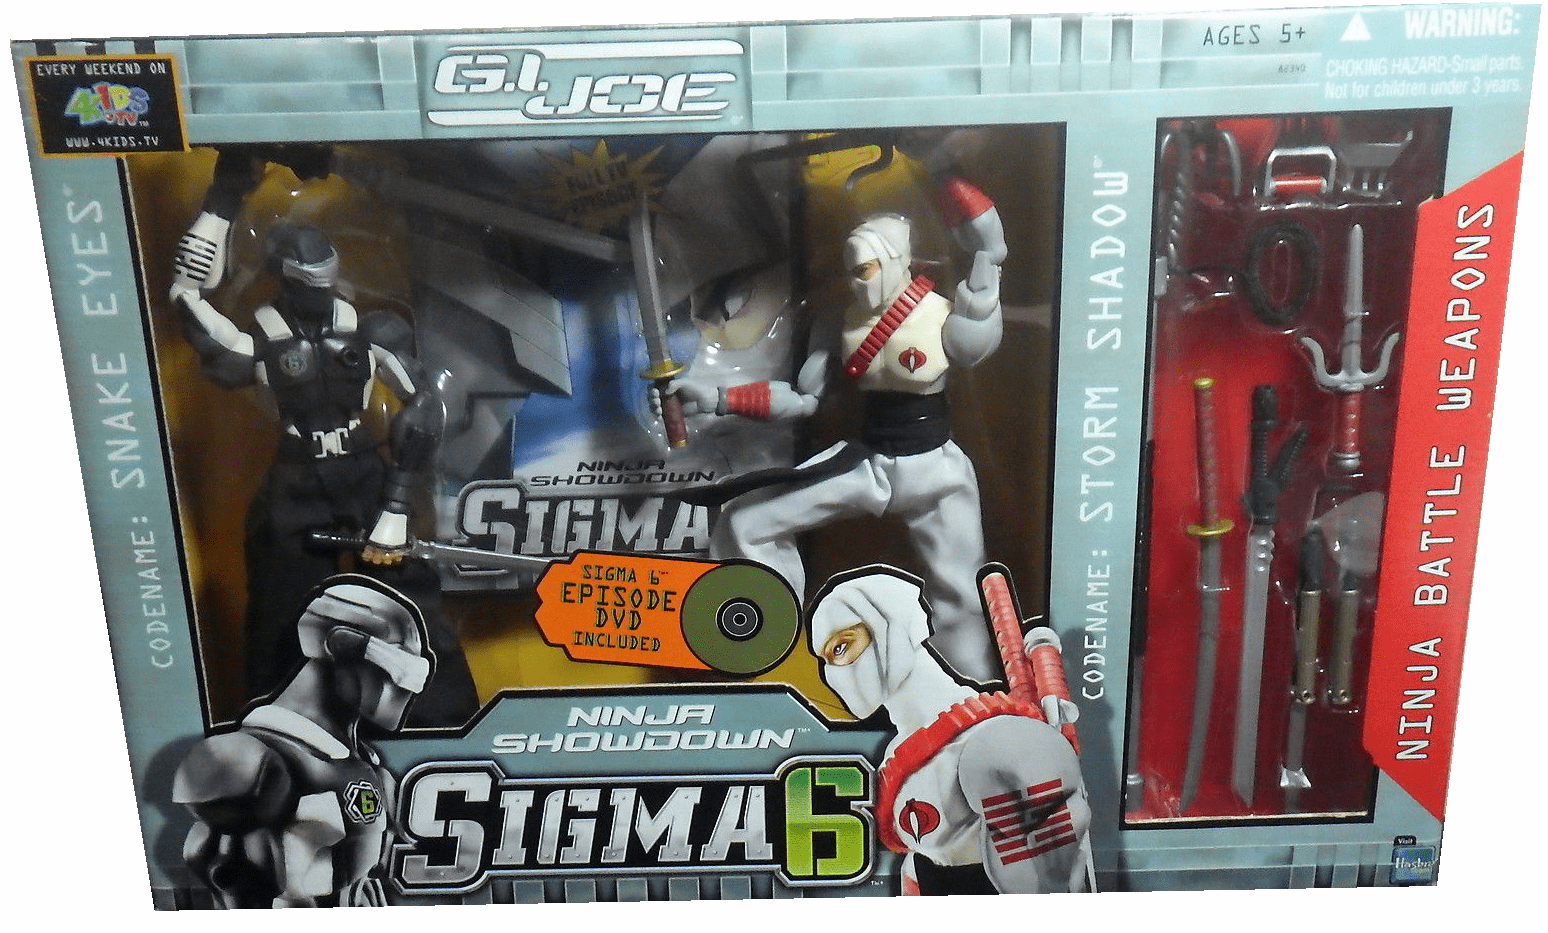 G.I. Joe Sigma 6 Ninja Showdown Figure Set